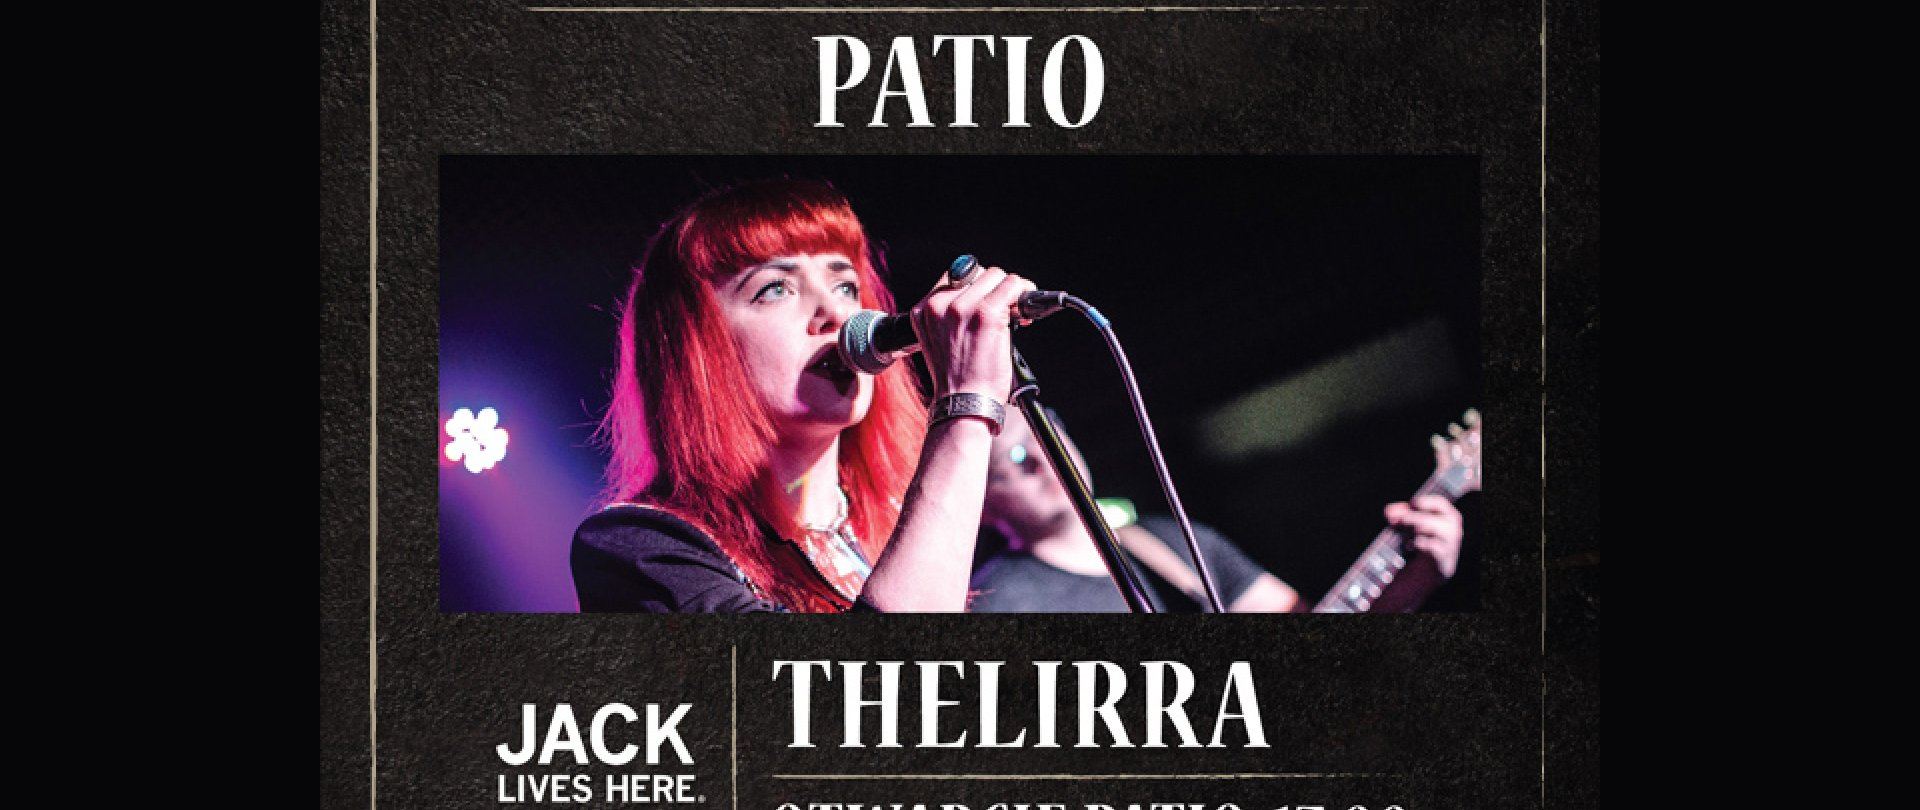 TheLiRRa - JLH Patio Lord Jack